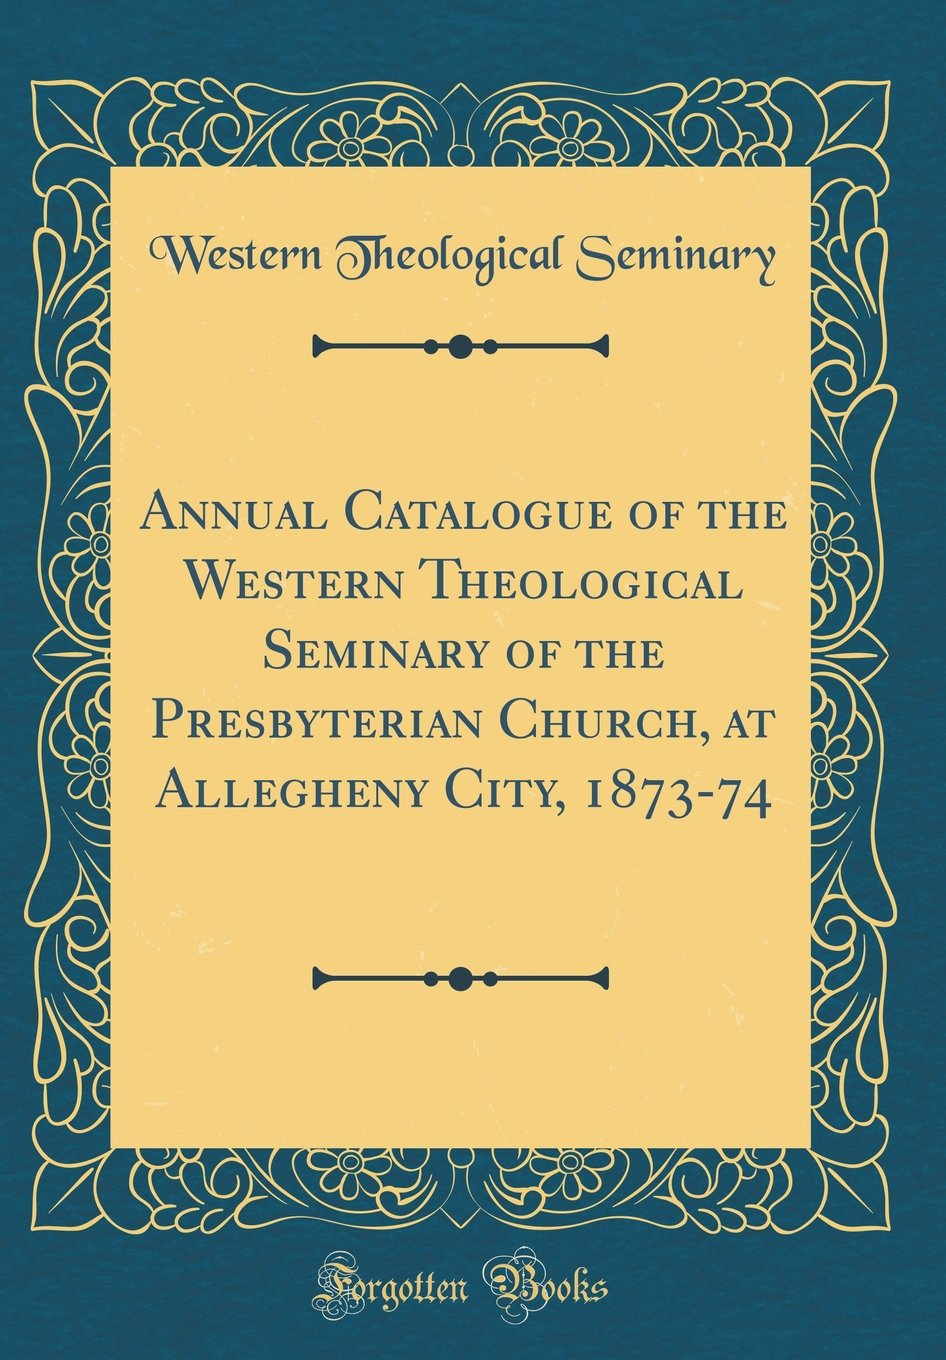 Read Online Annual Catalogue of the Western Theological Seminary of the Presbyterian Church, at Allegheny City, 1873-74 (Classic Reprint) PDF